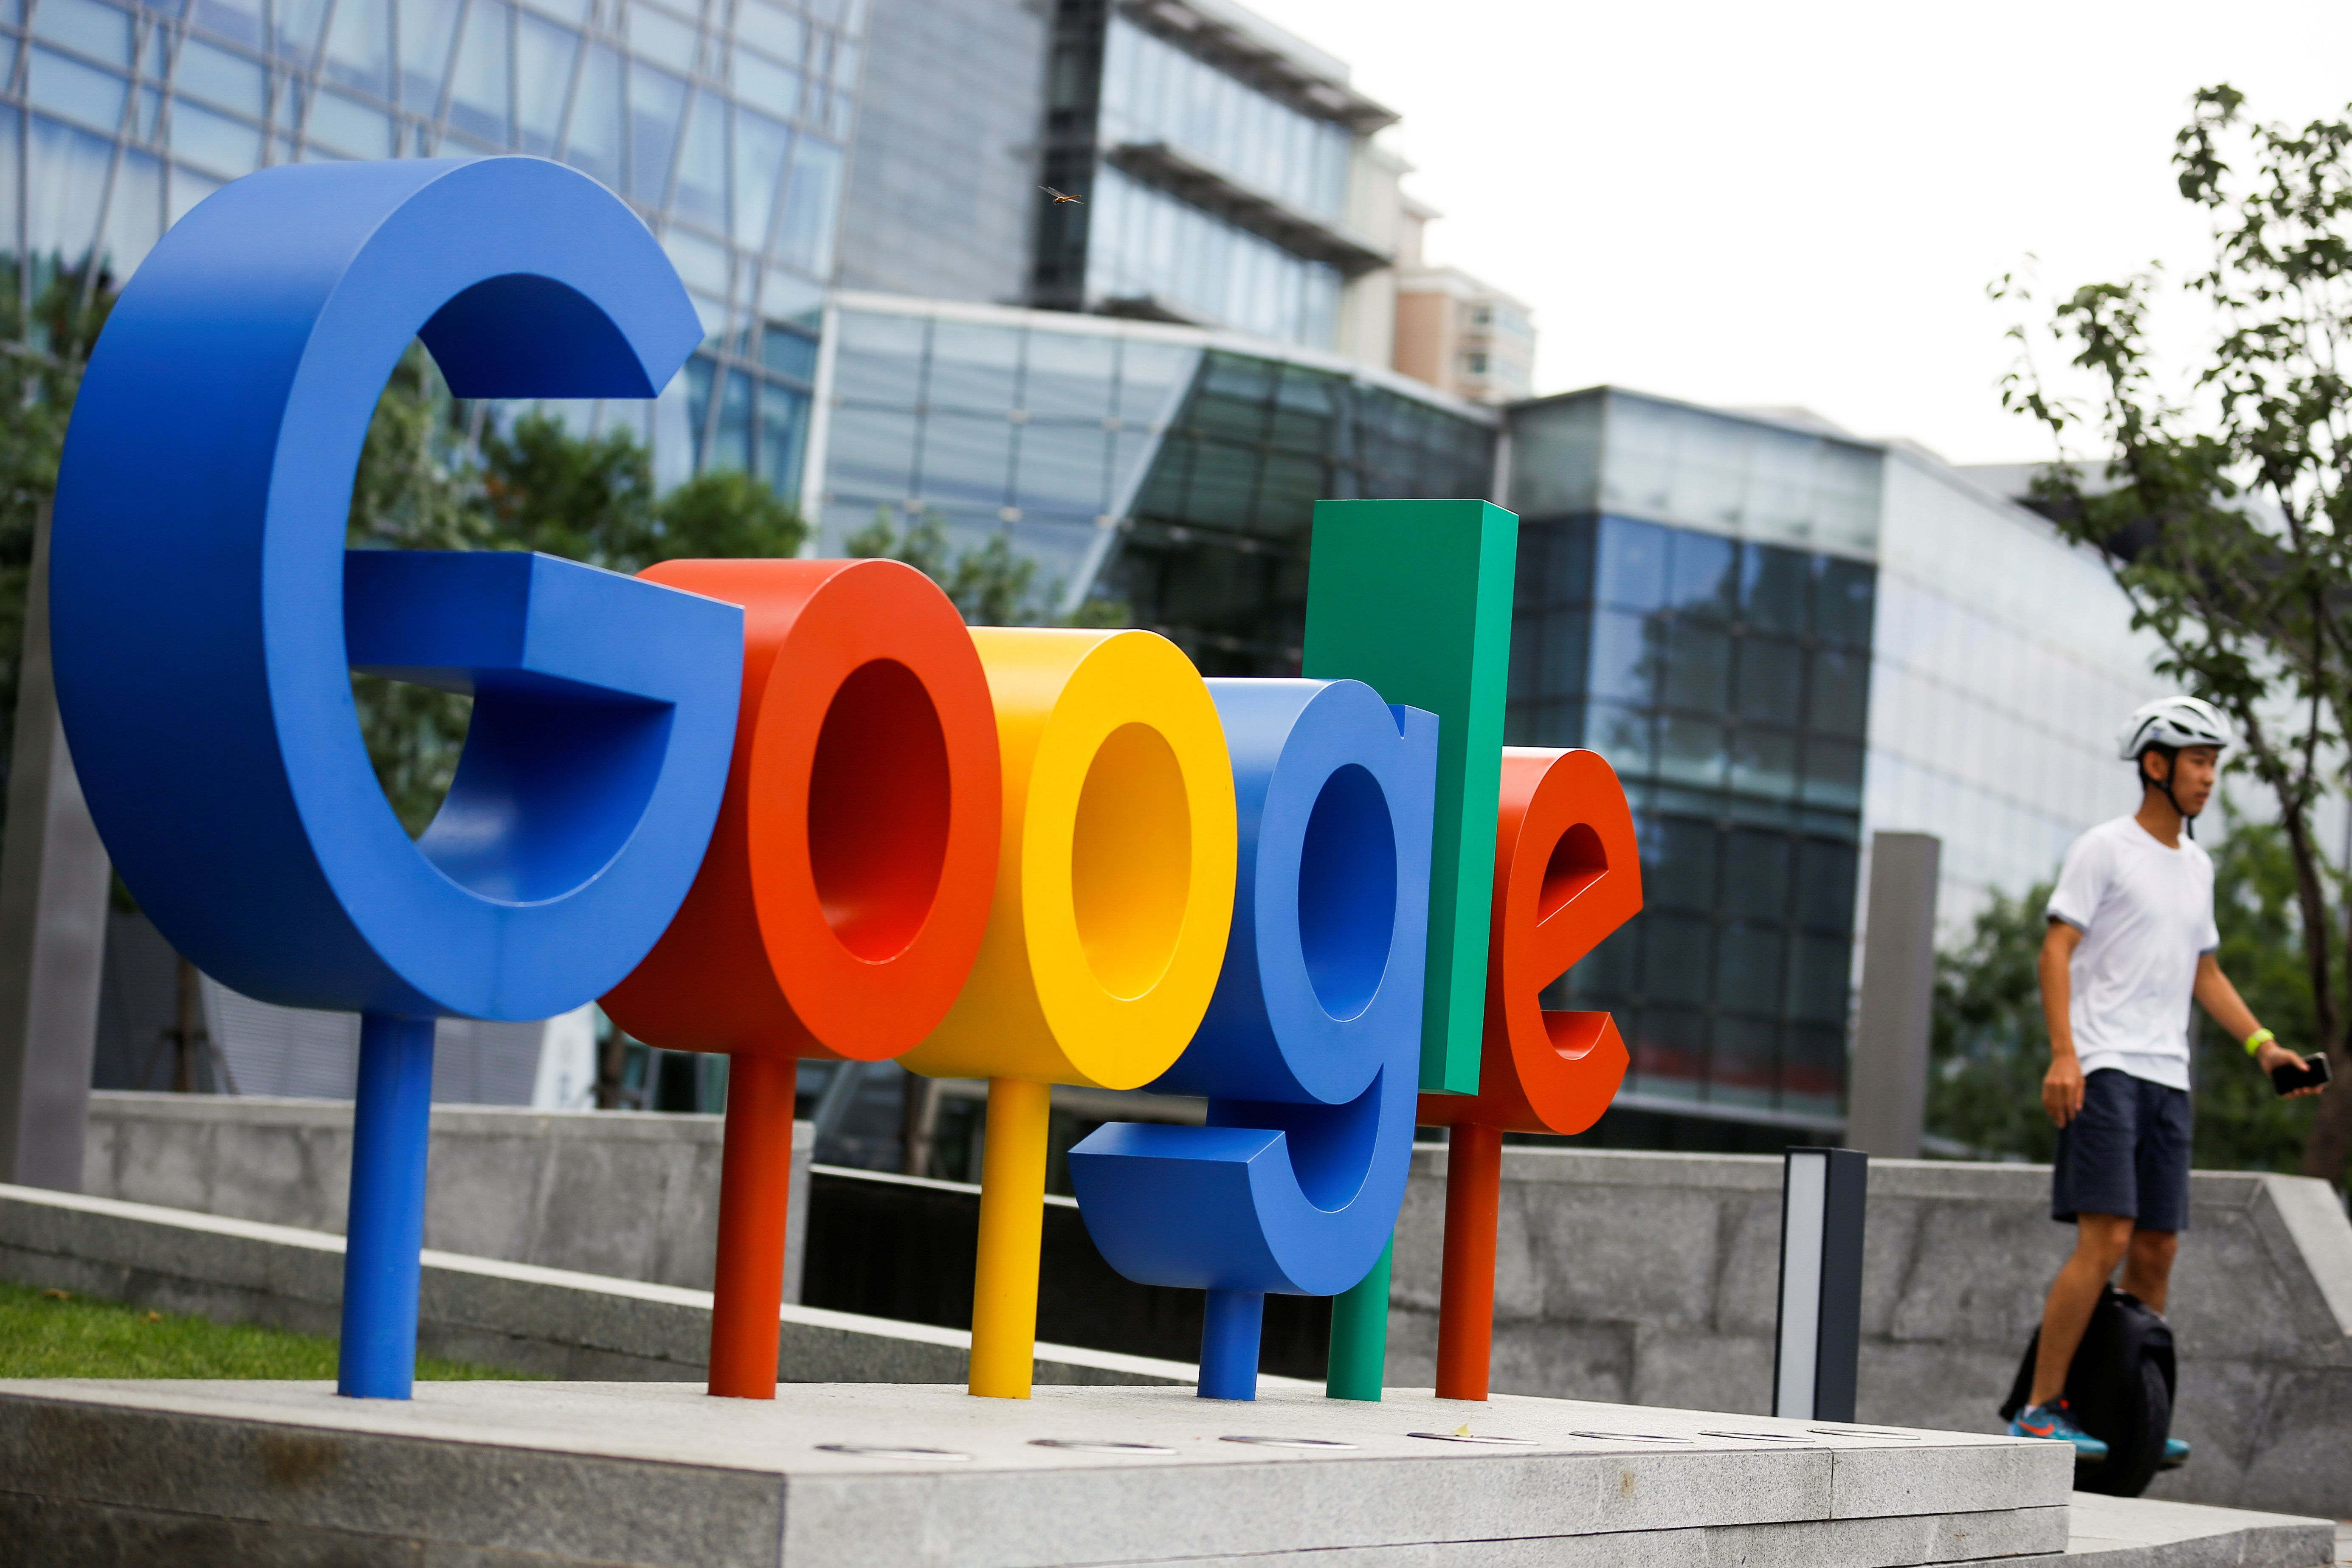 Google+ Shuttered After Security Flaw Exposed Data Of At Least 500,000